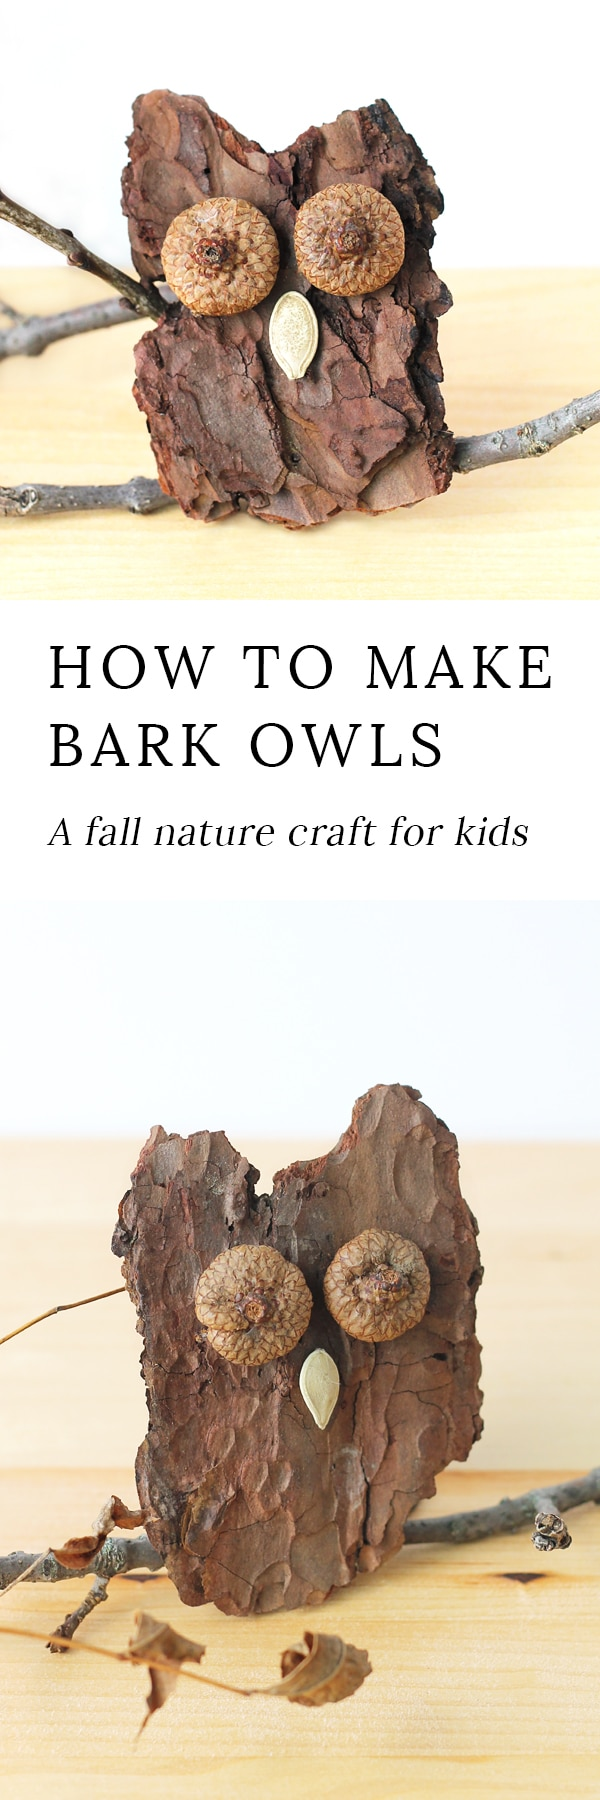 Kids of all ages will enjoy making Bark Owls from bark, acorns, twigs, and seeds after a fall nature walk.